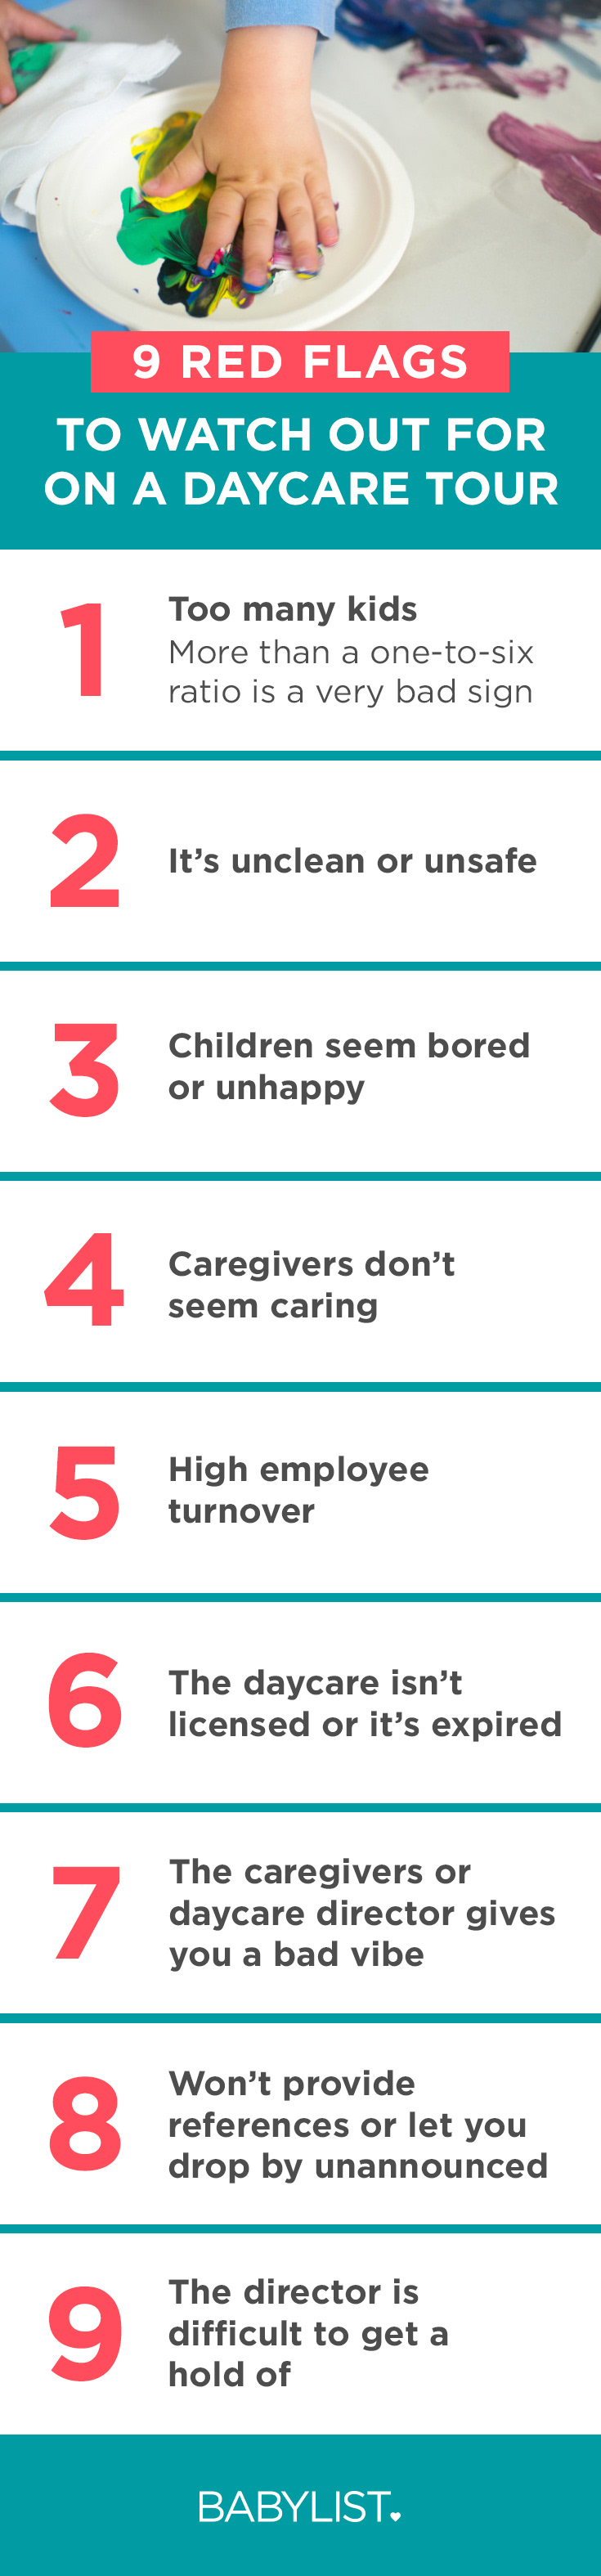 Be especially wary (maybe, run!) if you notice any of these problems on your daycare tours.